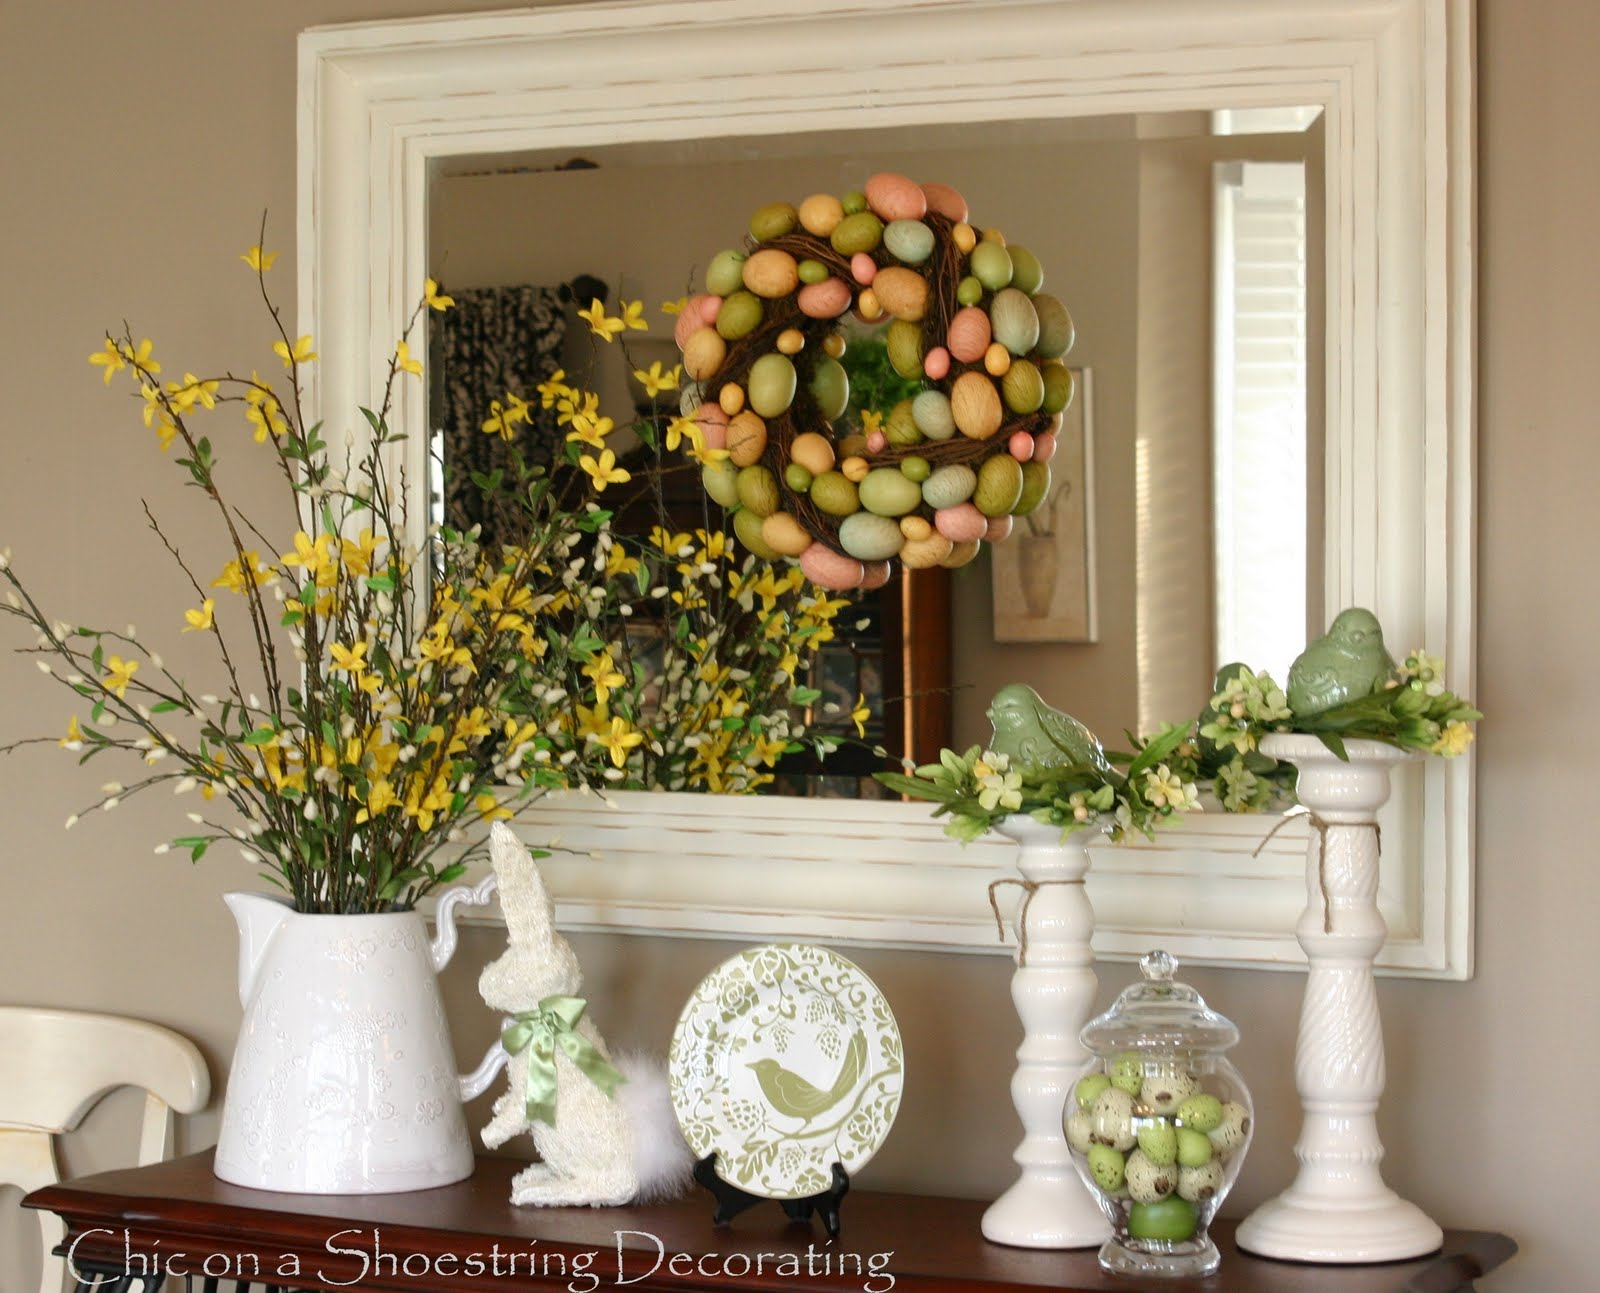 Easter Decorating Table Ideas Photograph | The coffee table